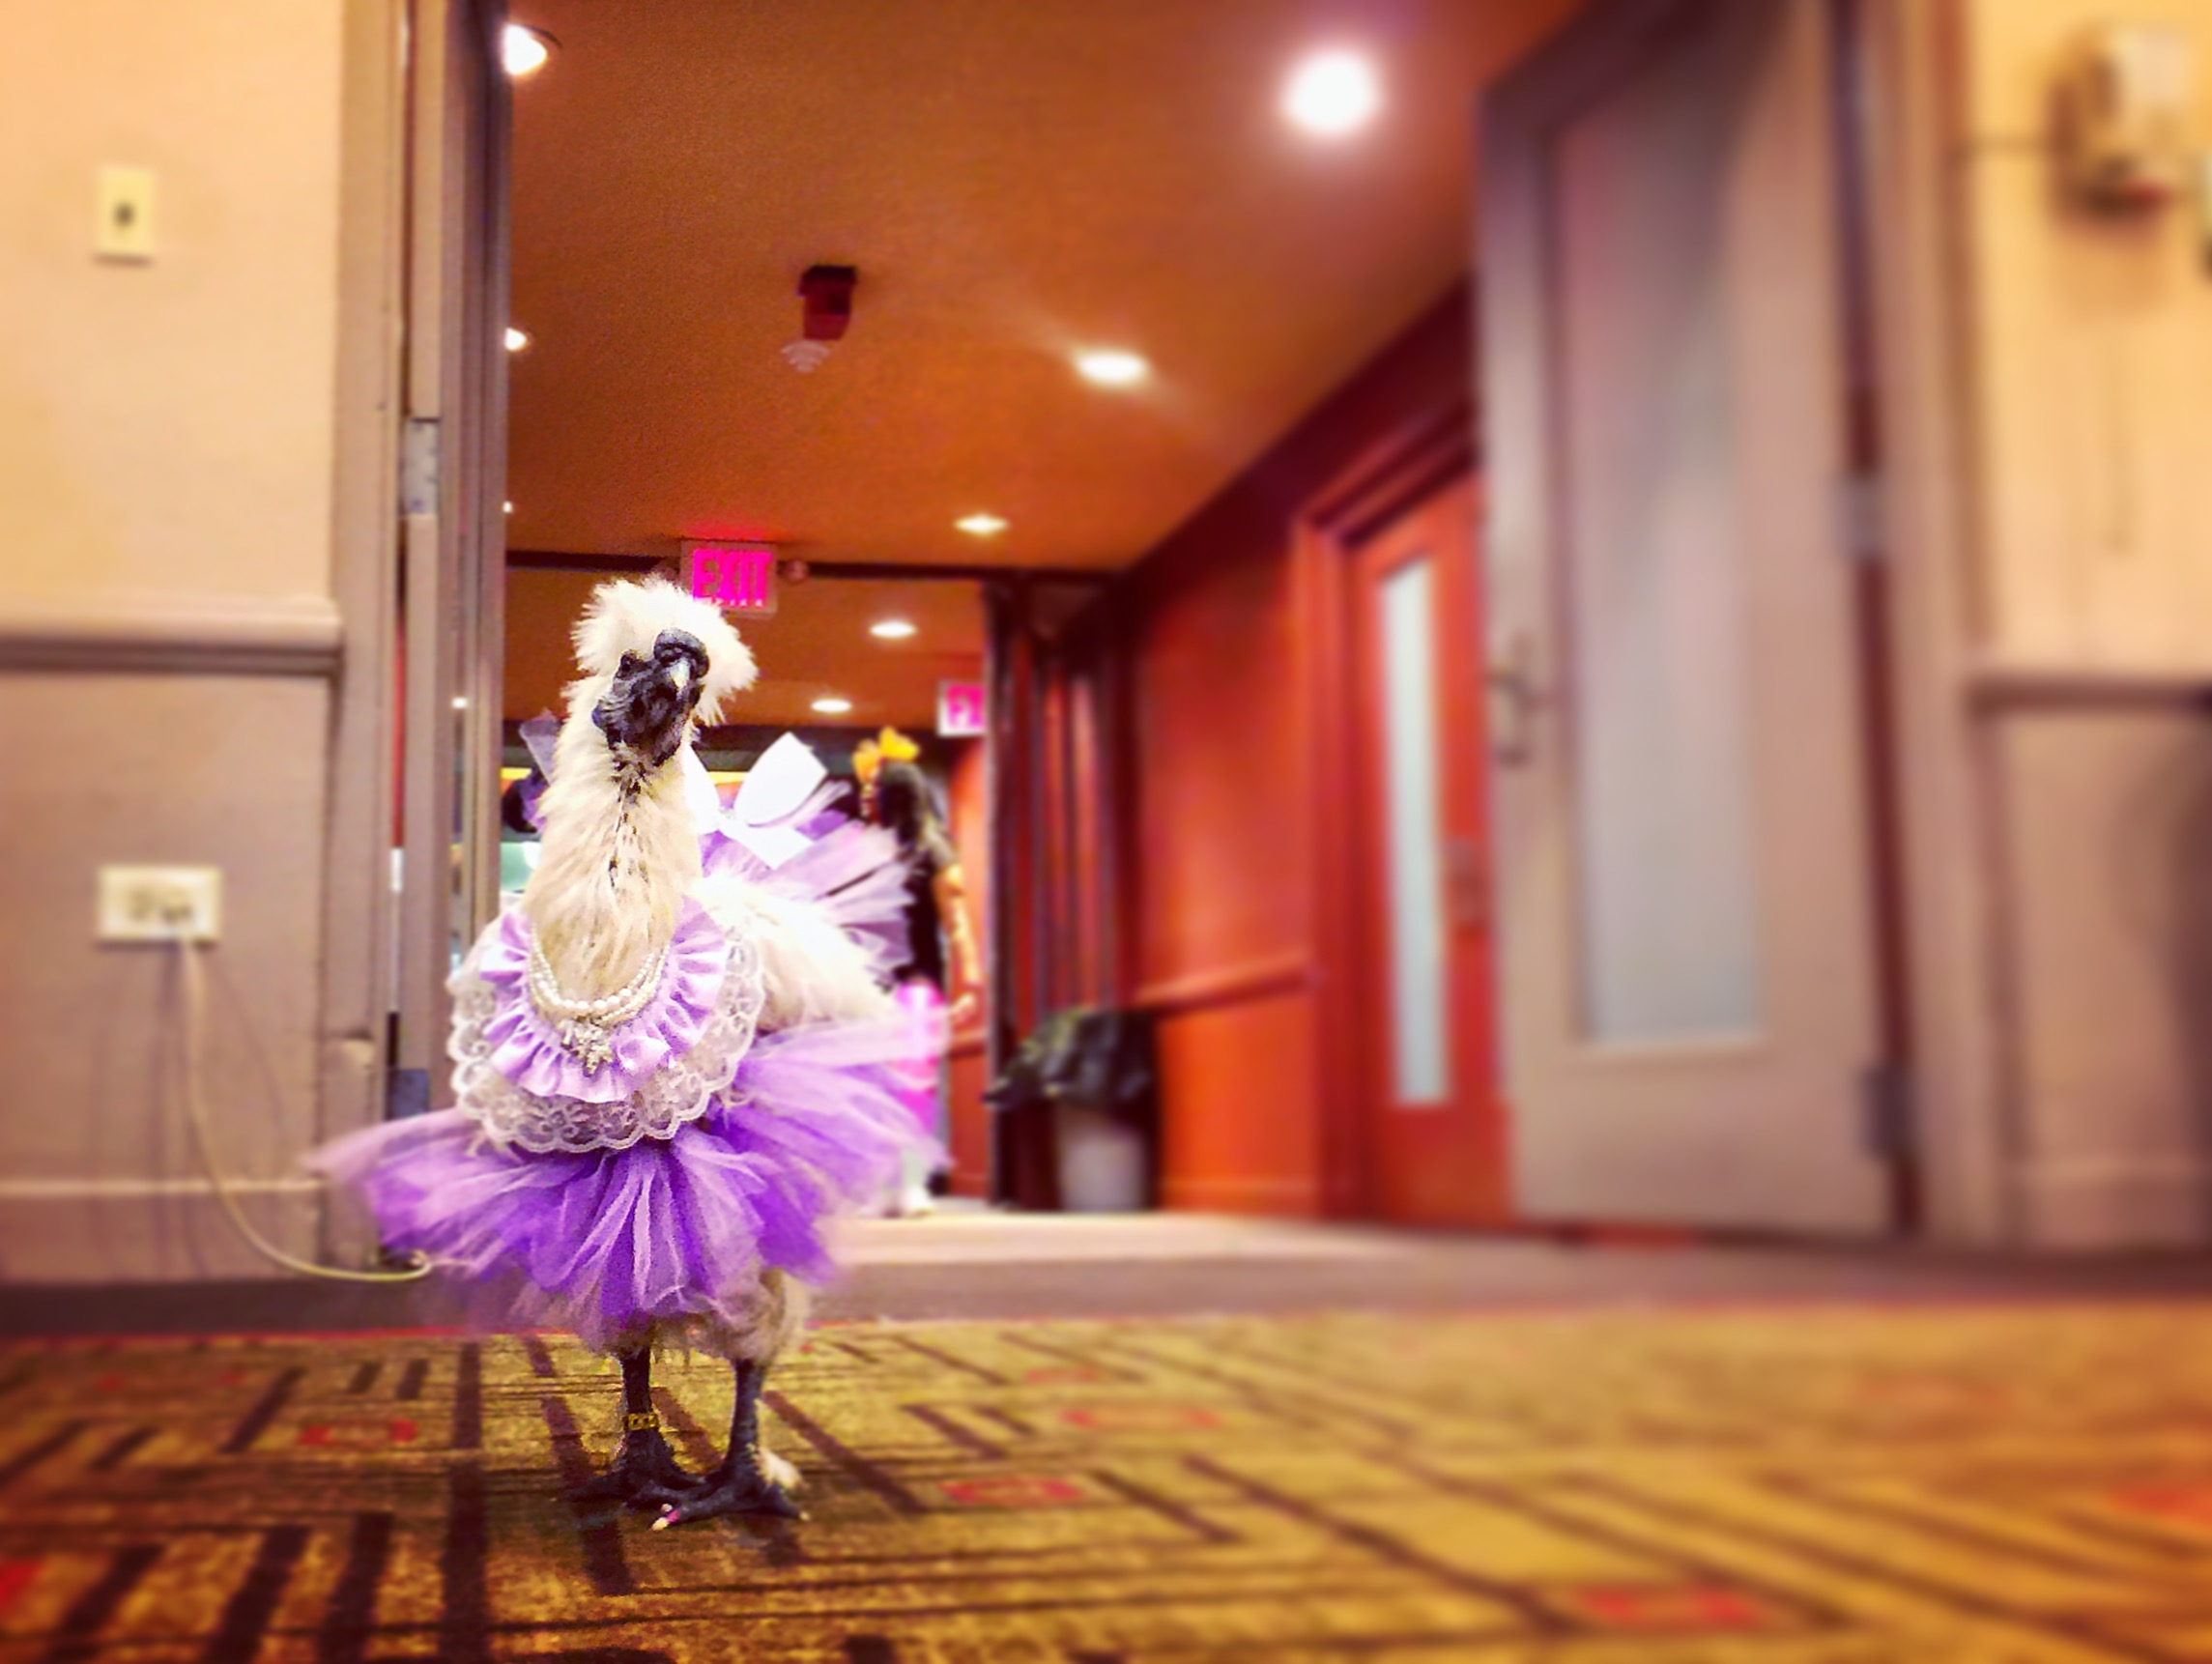 What's the big deal? It's just a chicken named Lady Gaga wearing a purple and lace dress.